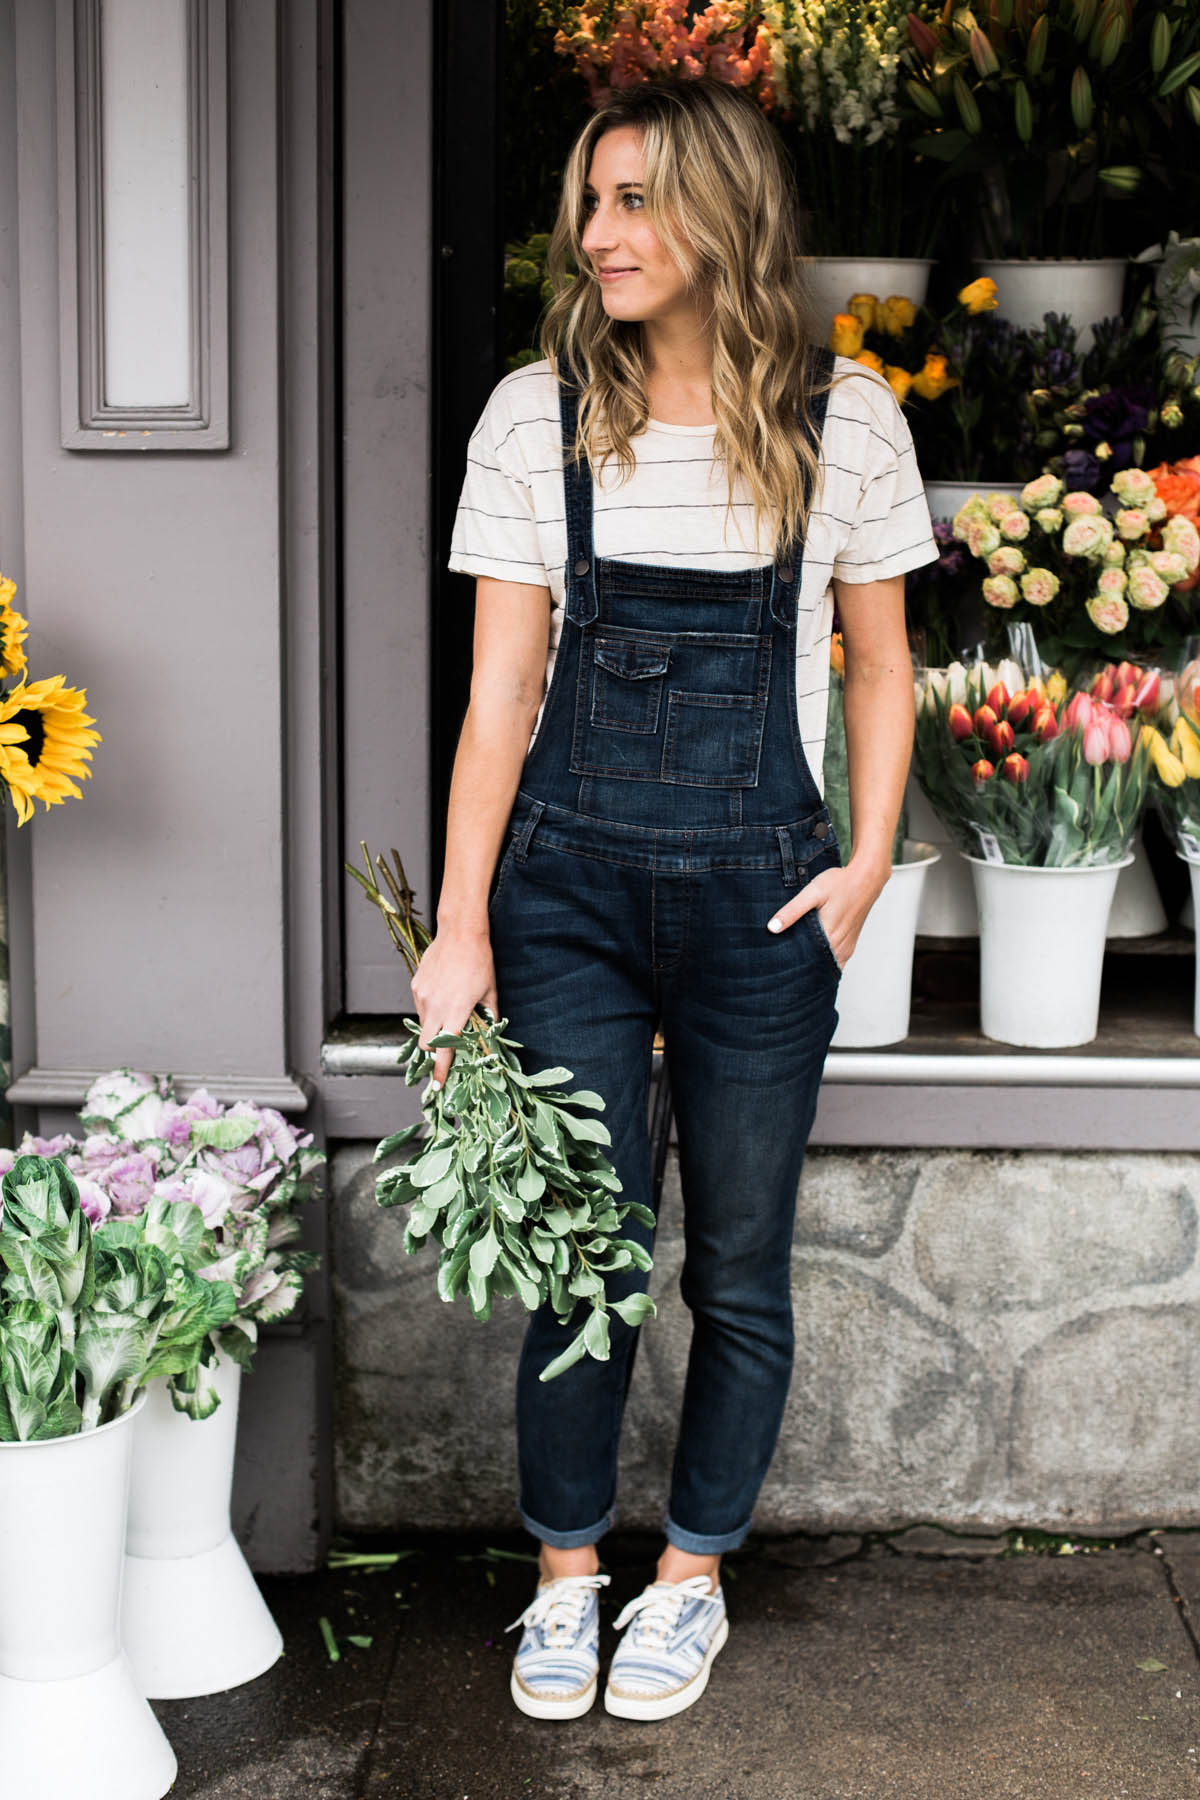 Free People denim overalls, Madewell striped tee, and wavy blonde hair